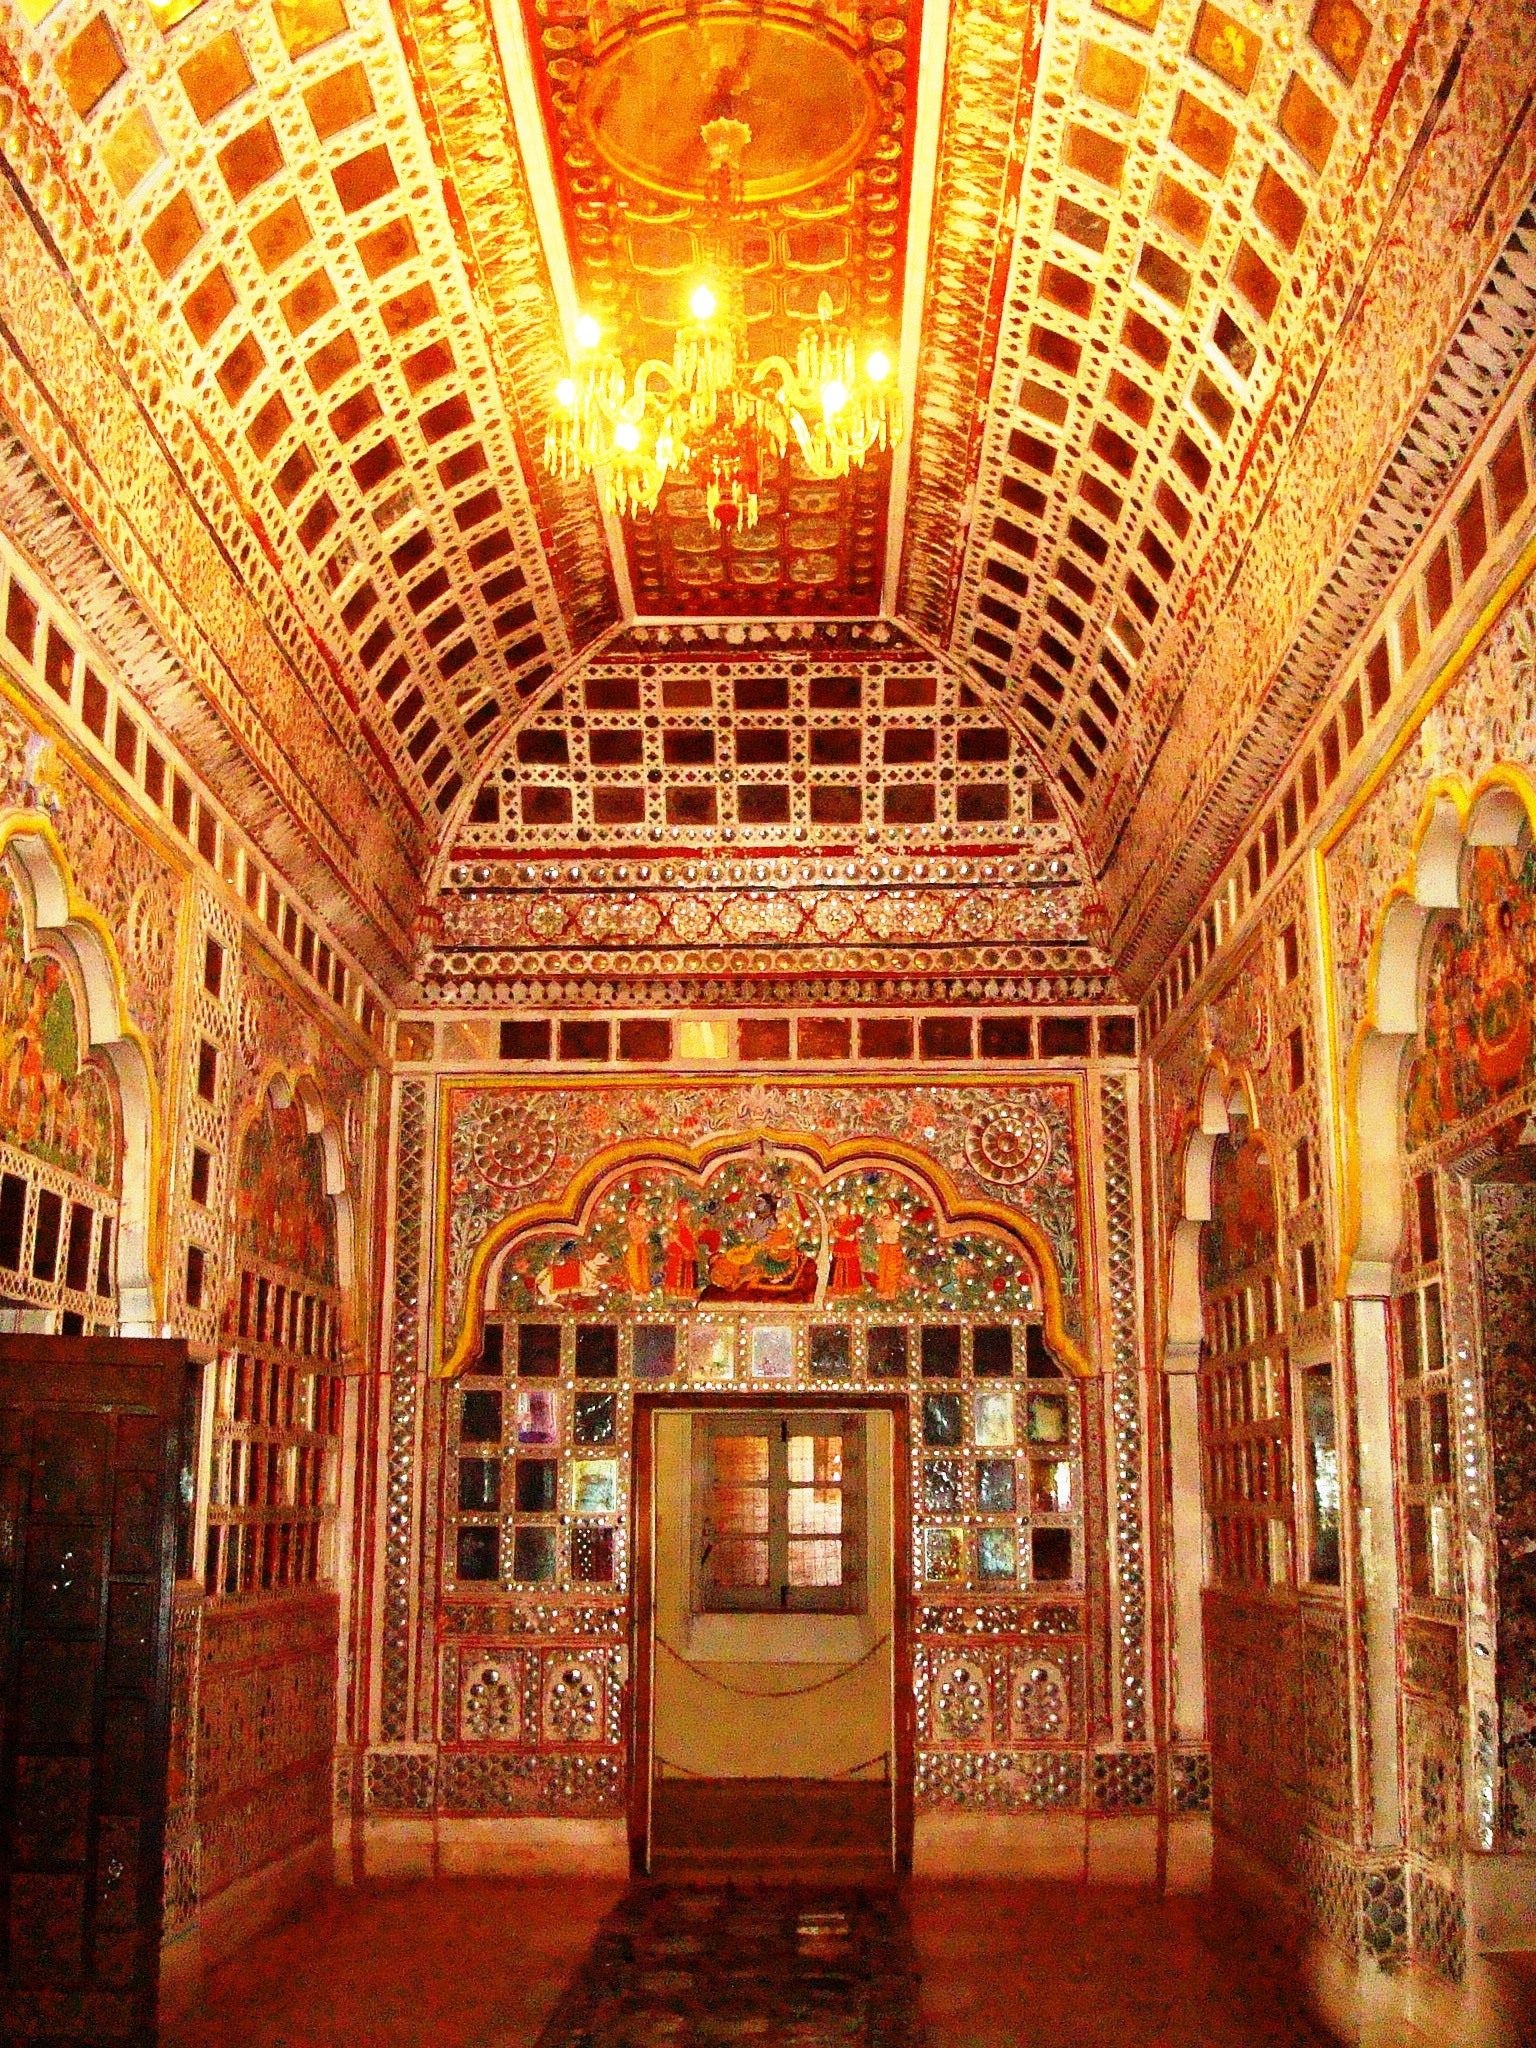 FileSheesh Mahal at Mehrangarh Fort JodhpurJPG